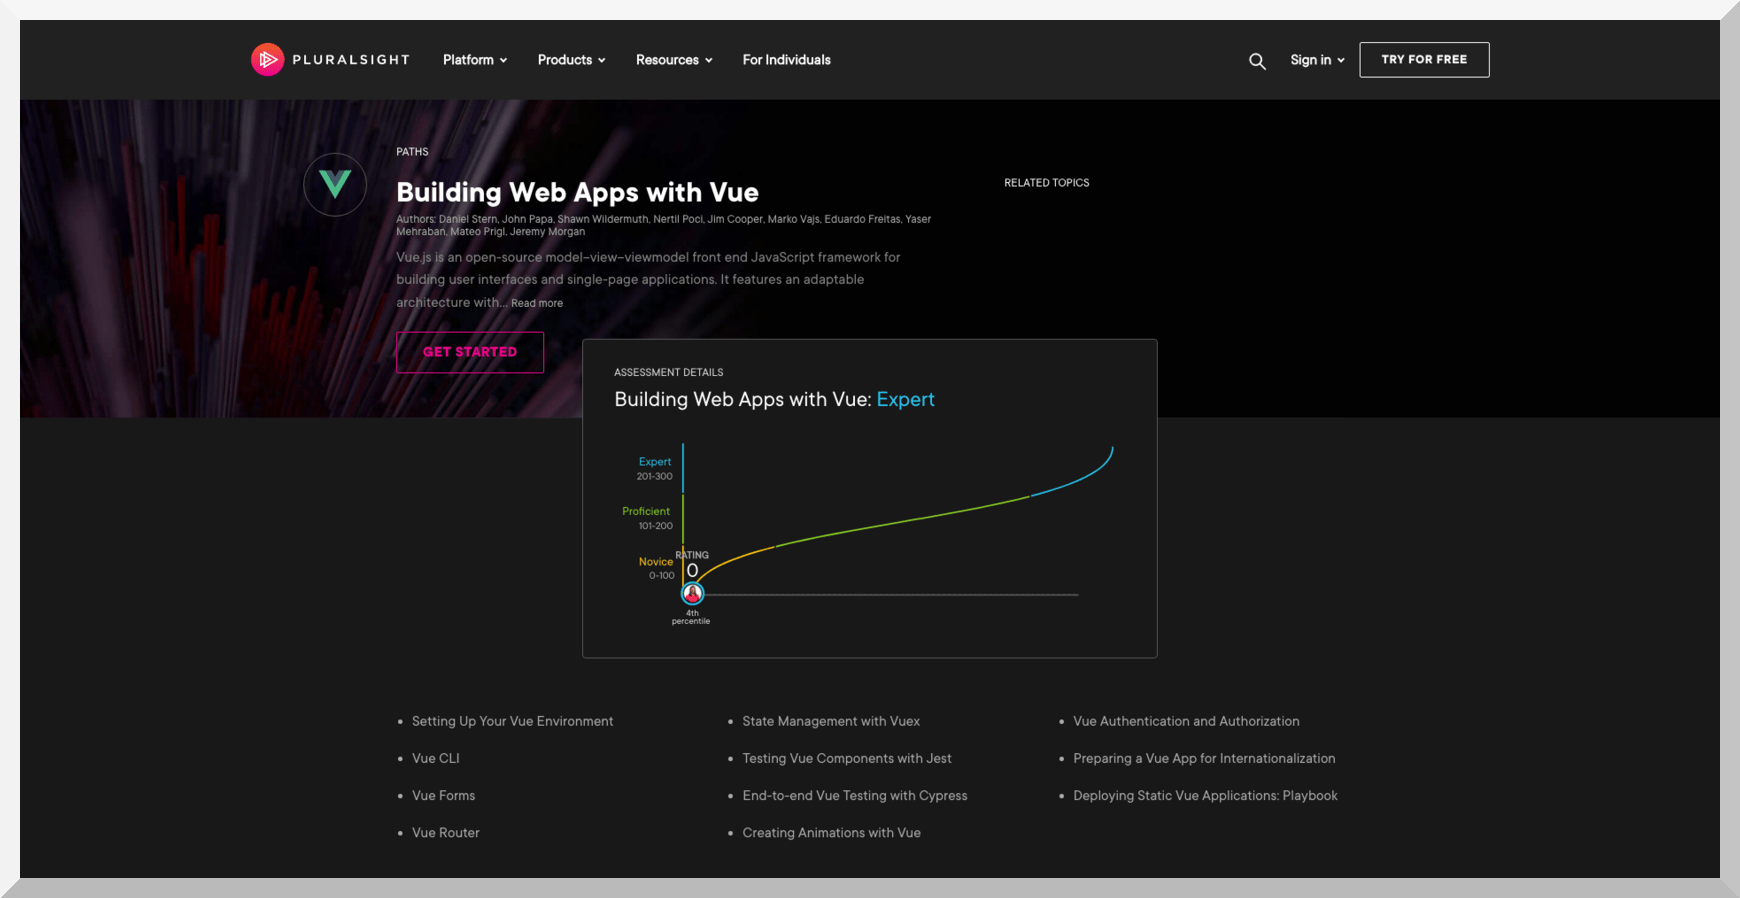 Building Web Apps with Vue – Pluralsight